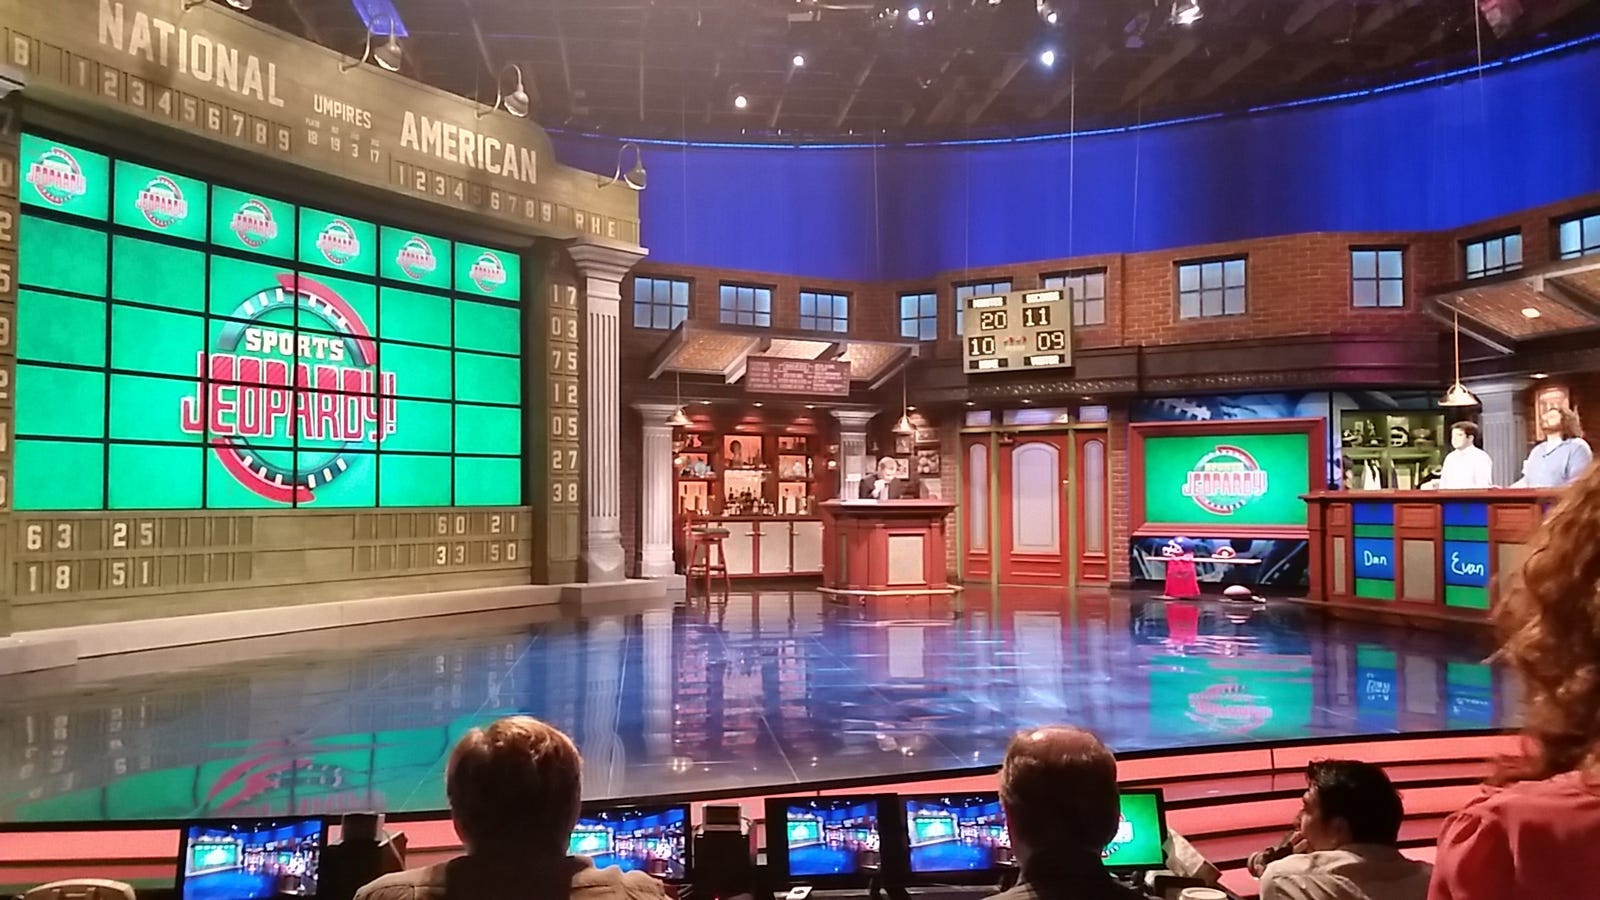 Coffee And Cars >> Here's What The Sports Jeopardy! Set Will Look Like